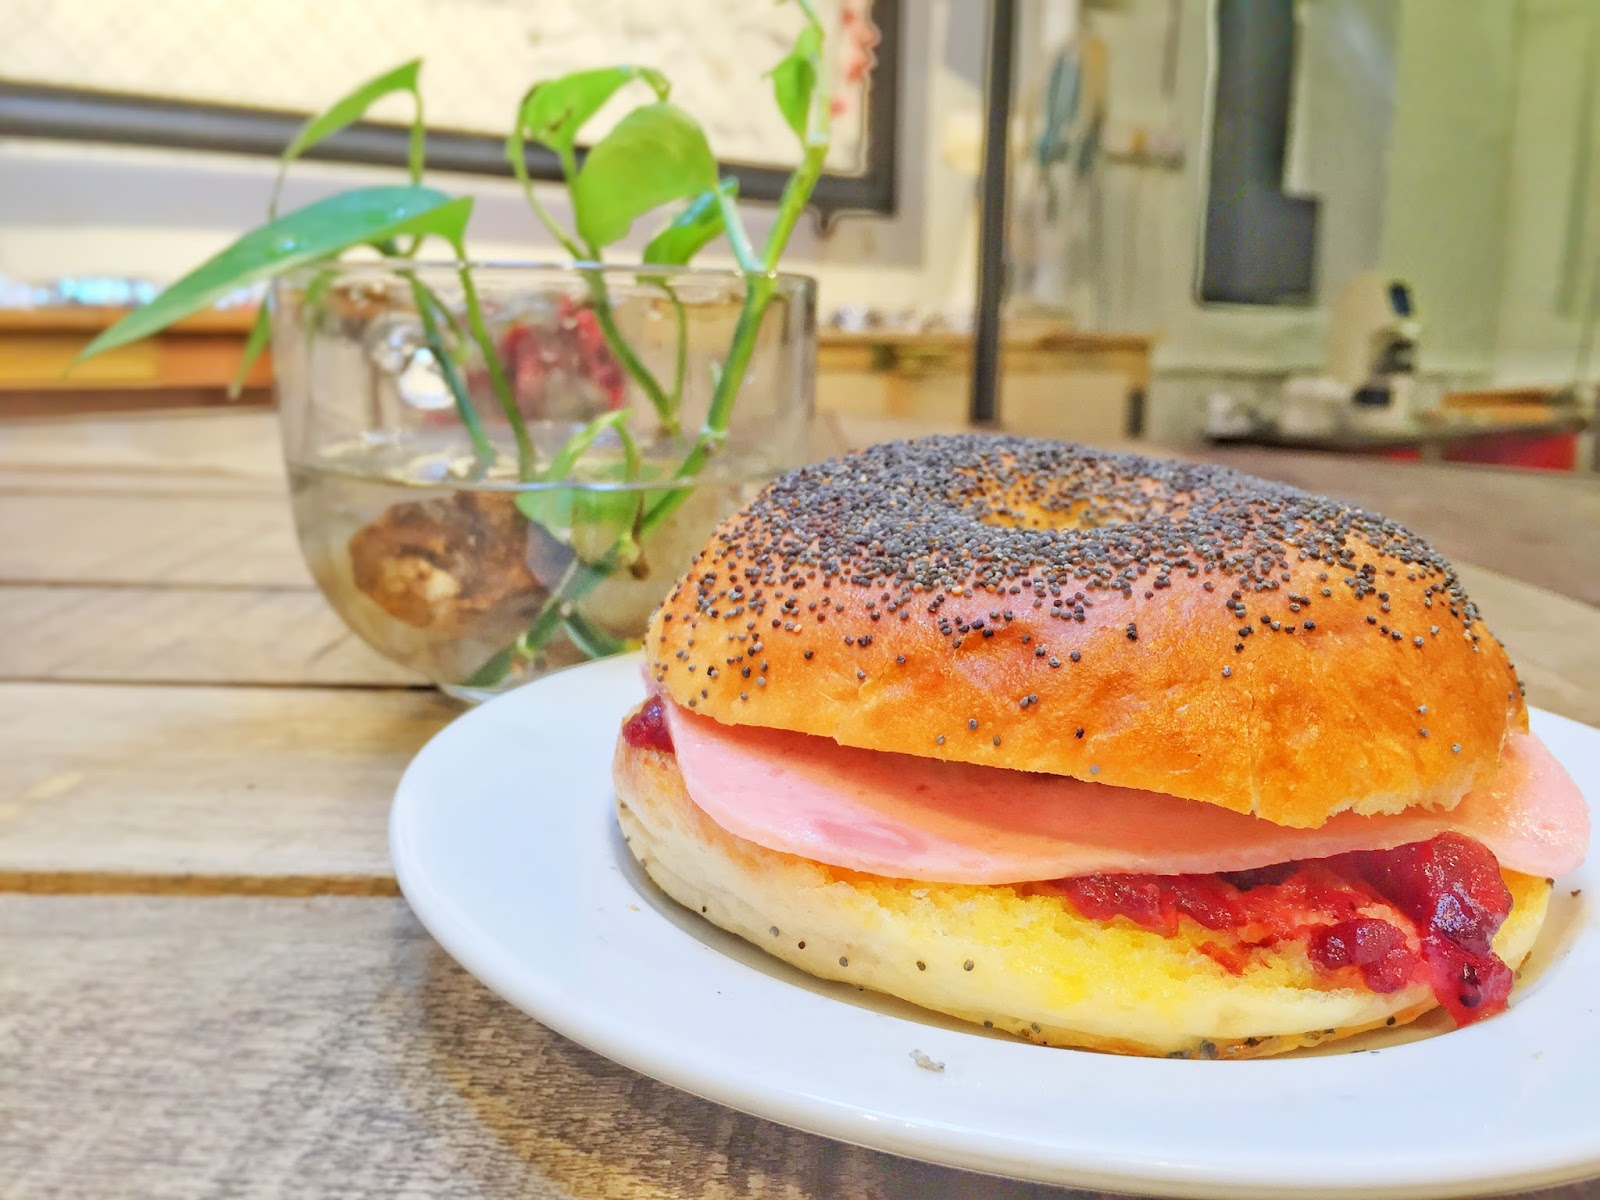 Penang Cafes - The Mugshot Cafe Bagel Muffin